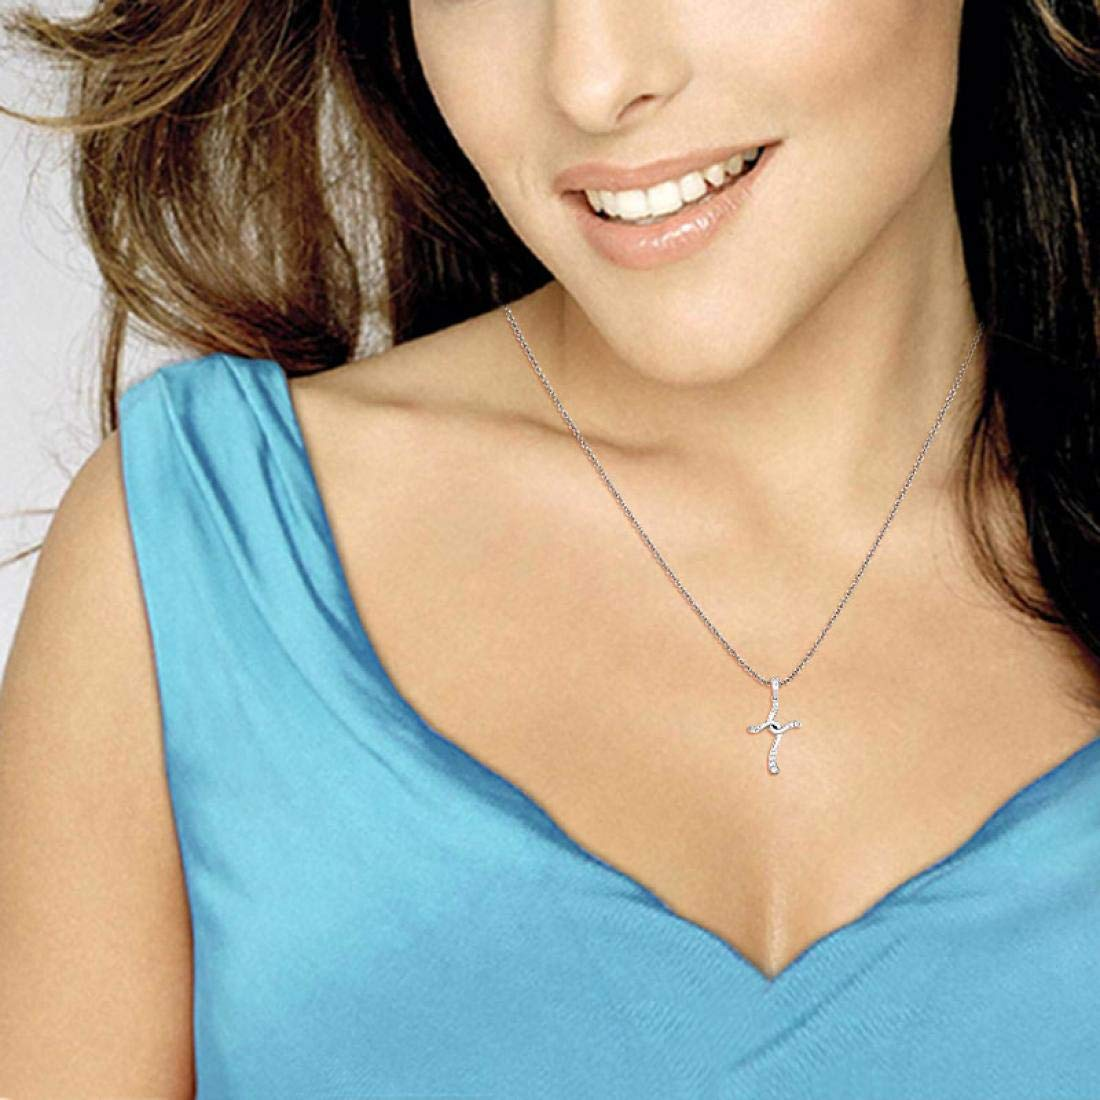 Without Chain Candere 14K Gold Cross Diamond Pendant for Women//Girls